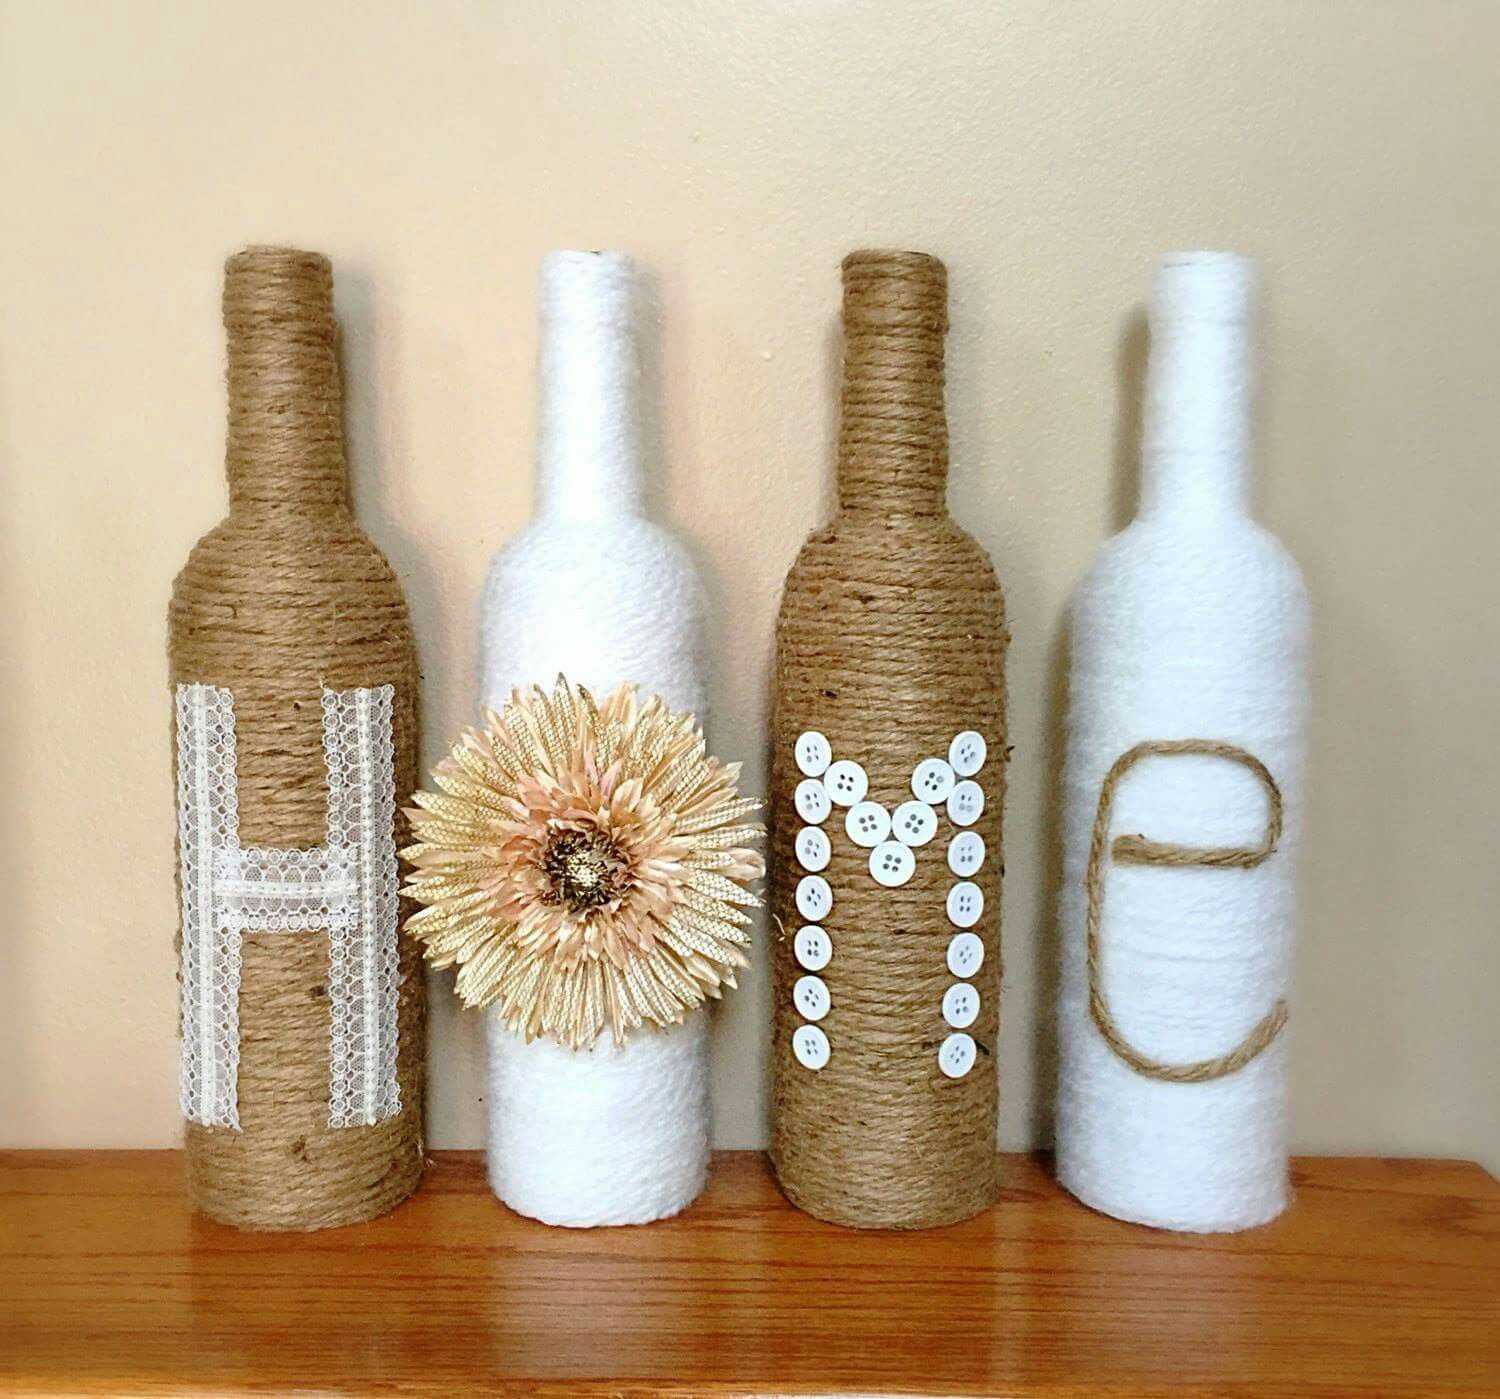 How To Decorate Wine Bottles Unique Pinsmileydawn On Wine Bottle Projects  Pinterest  Diy Stuff Inspiration Design